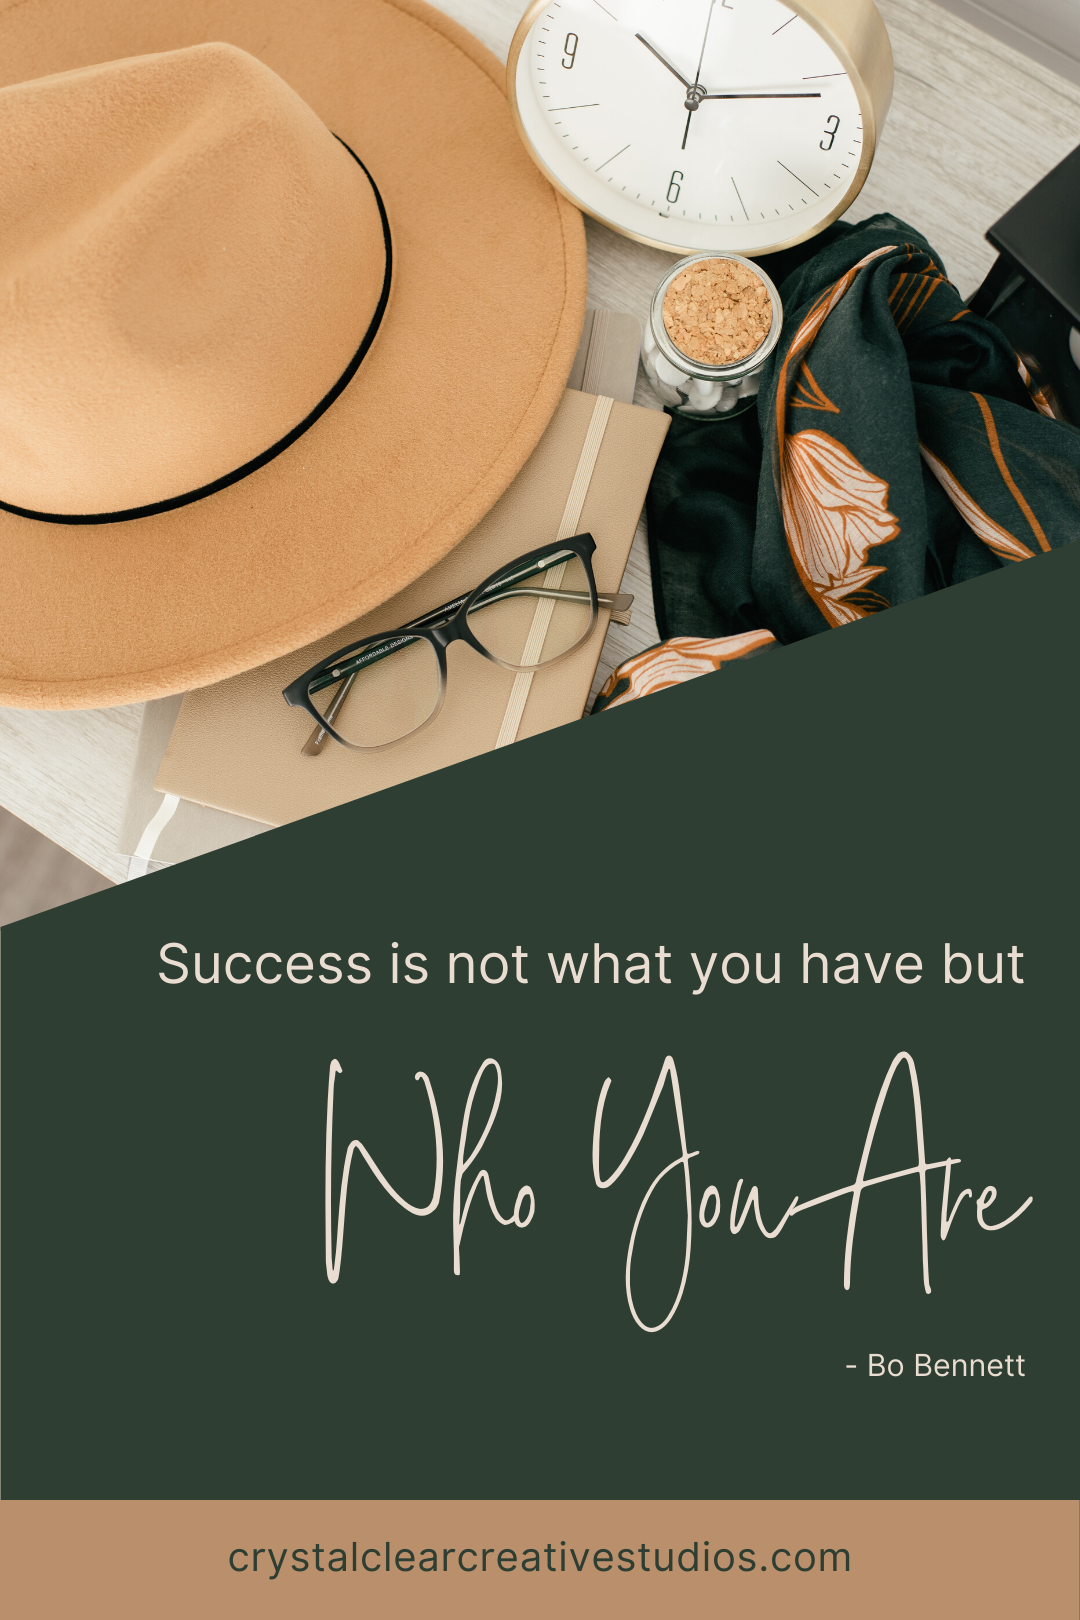 Success is not what you have but who you are.